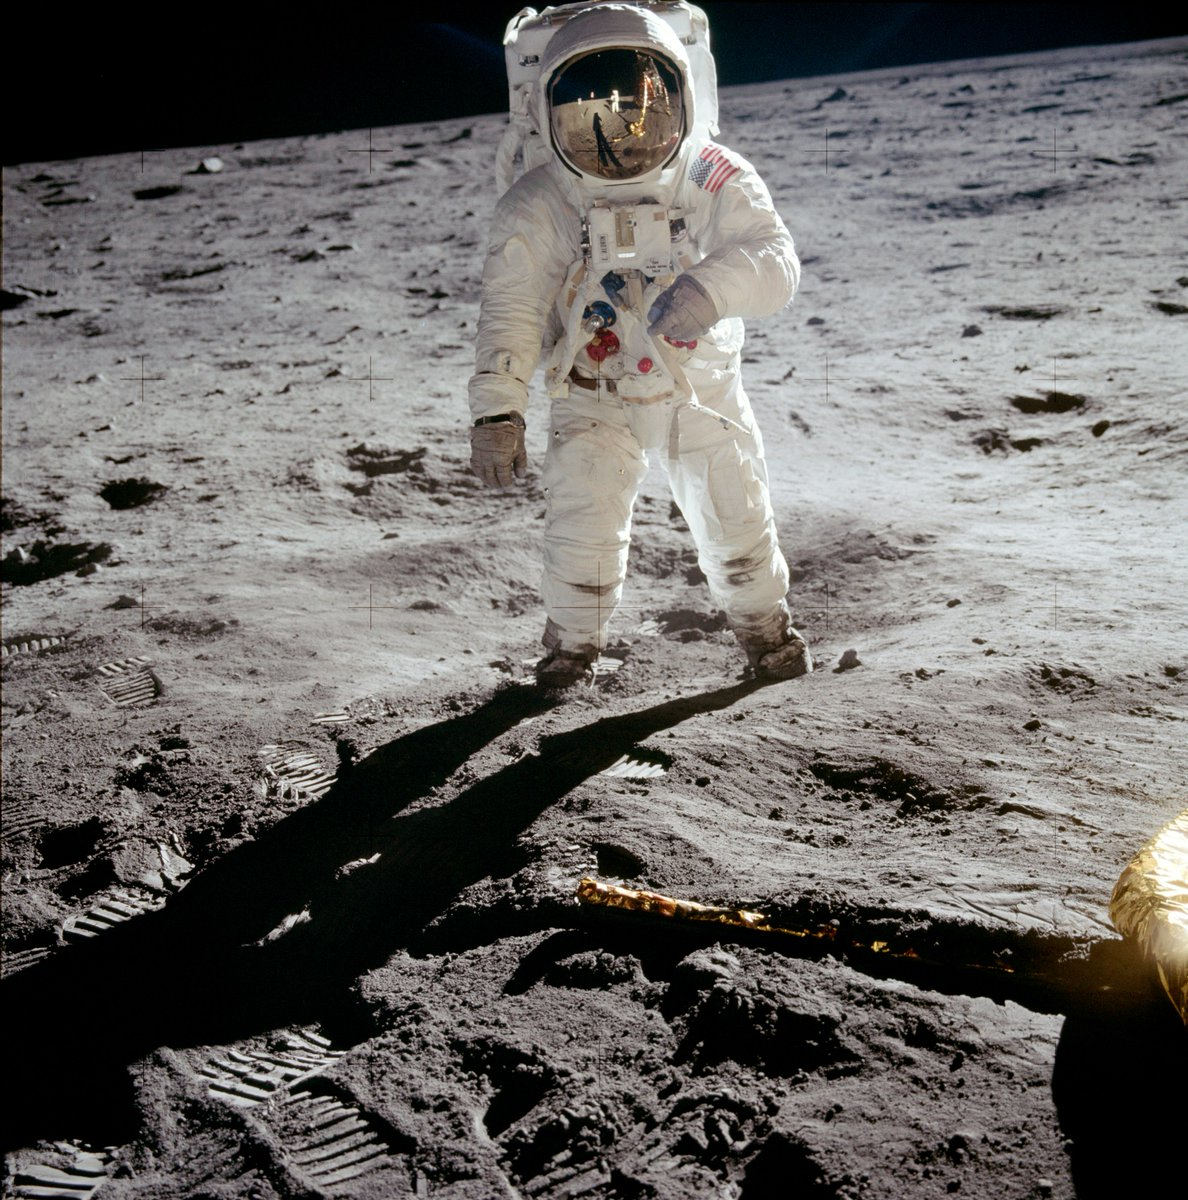 NASA Fact: The most iconic and requested Apollo 11 image is this photo of Astronaut Buzz Aldrin on the moon taken by Astronaut Neil Armstrong. If you look closely, you can see Armstrong in the photo capturing this very moment on July 20, 1969. https://t.co/hO1I1VKXVr